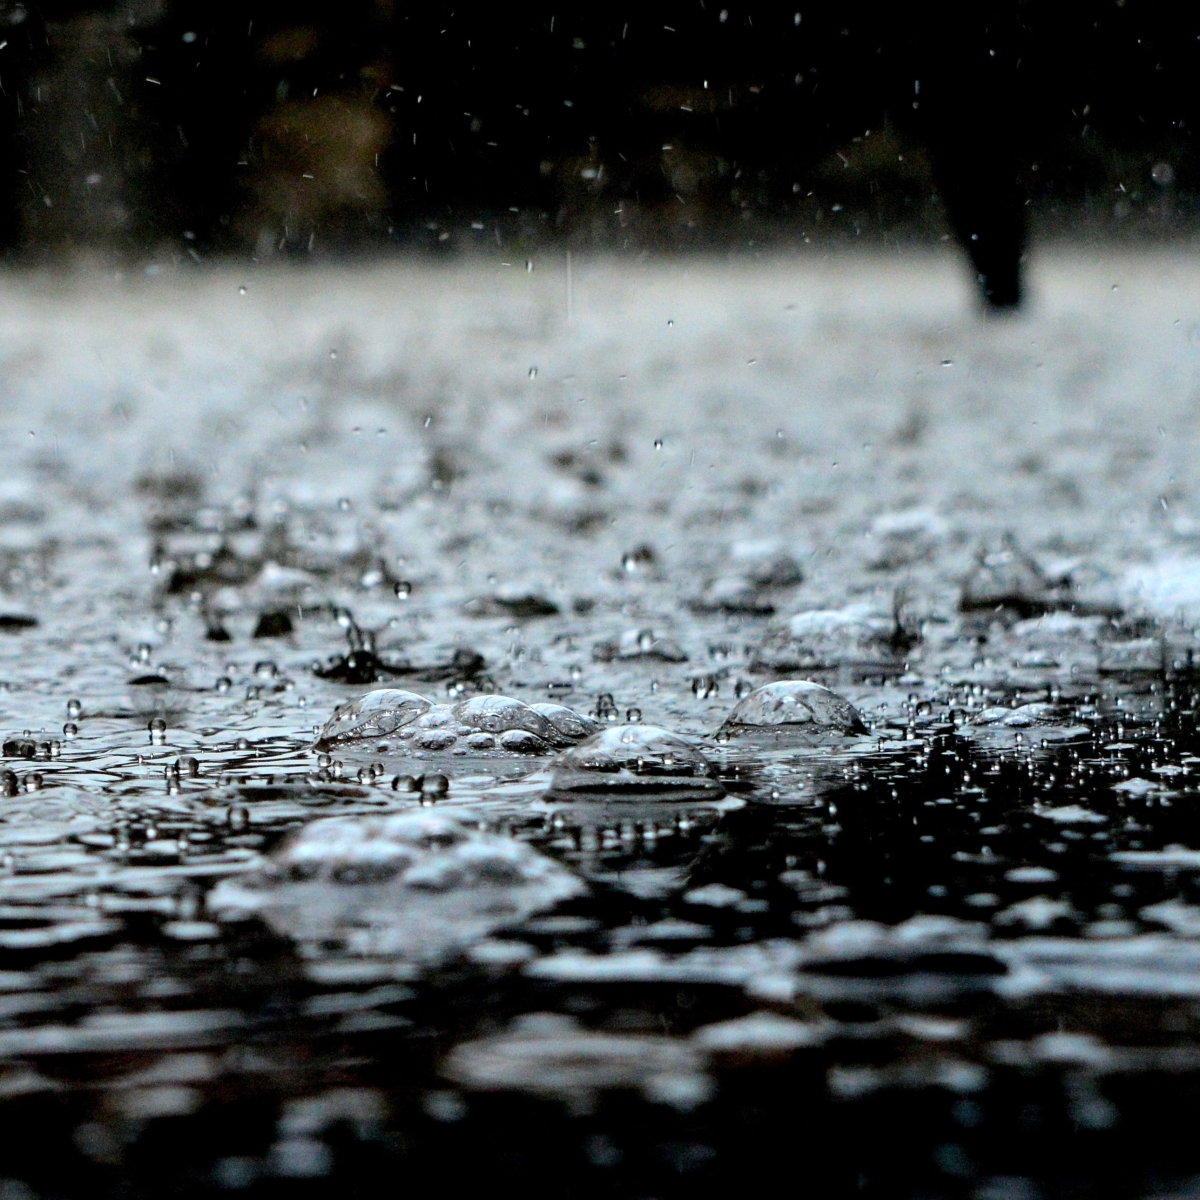 Indore: Monsoon officially in, moderate to heavyrains likely for couple of days